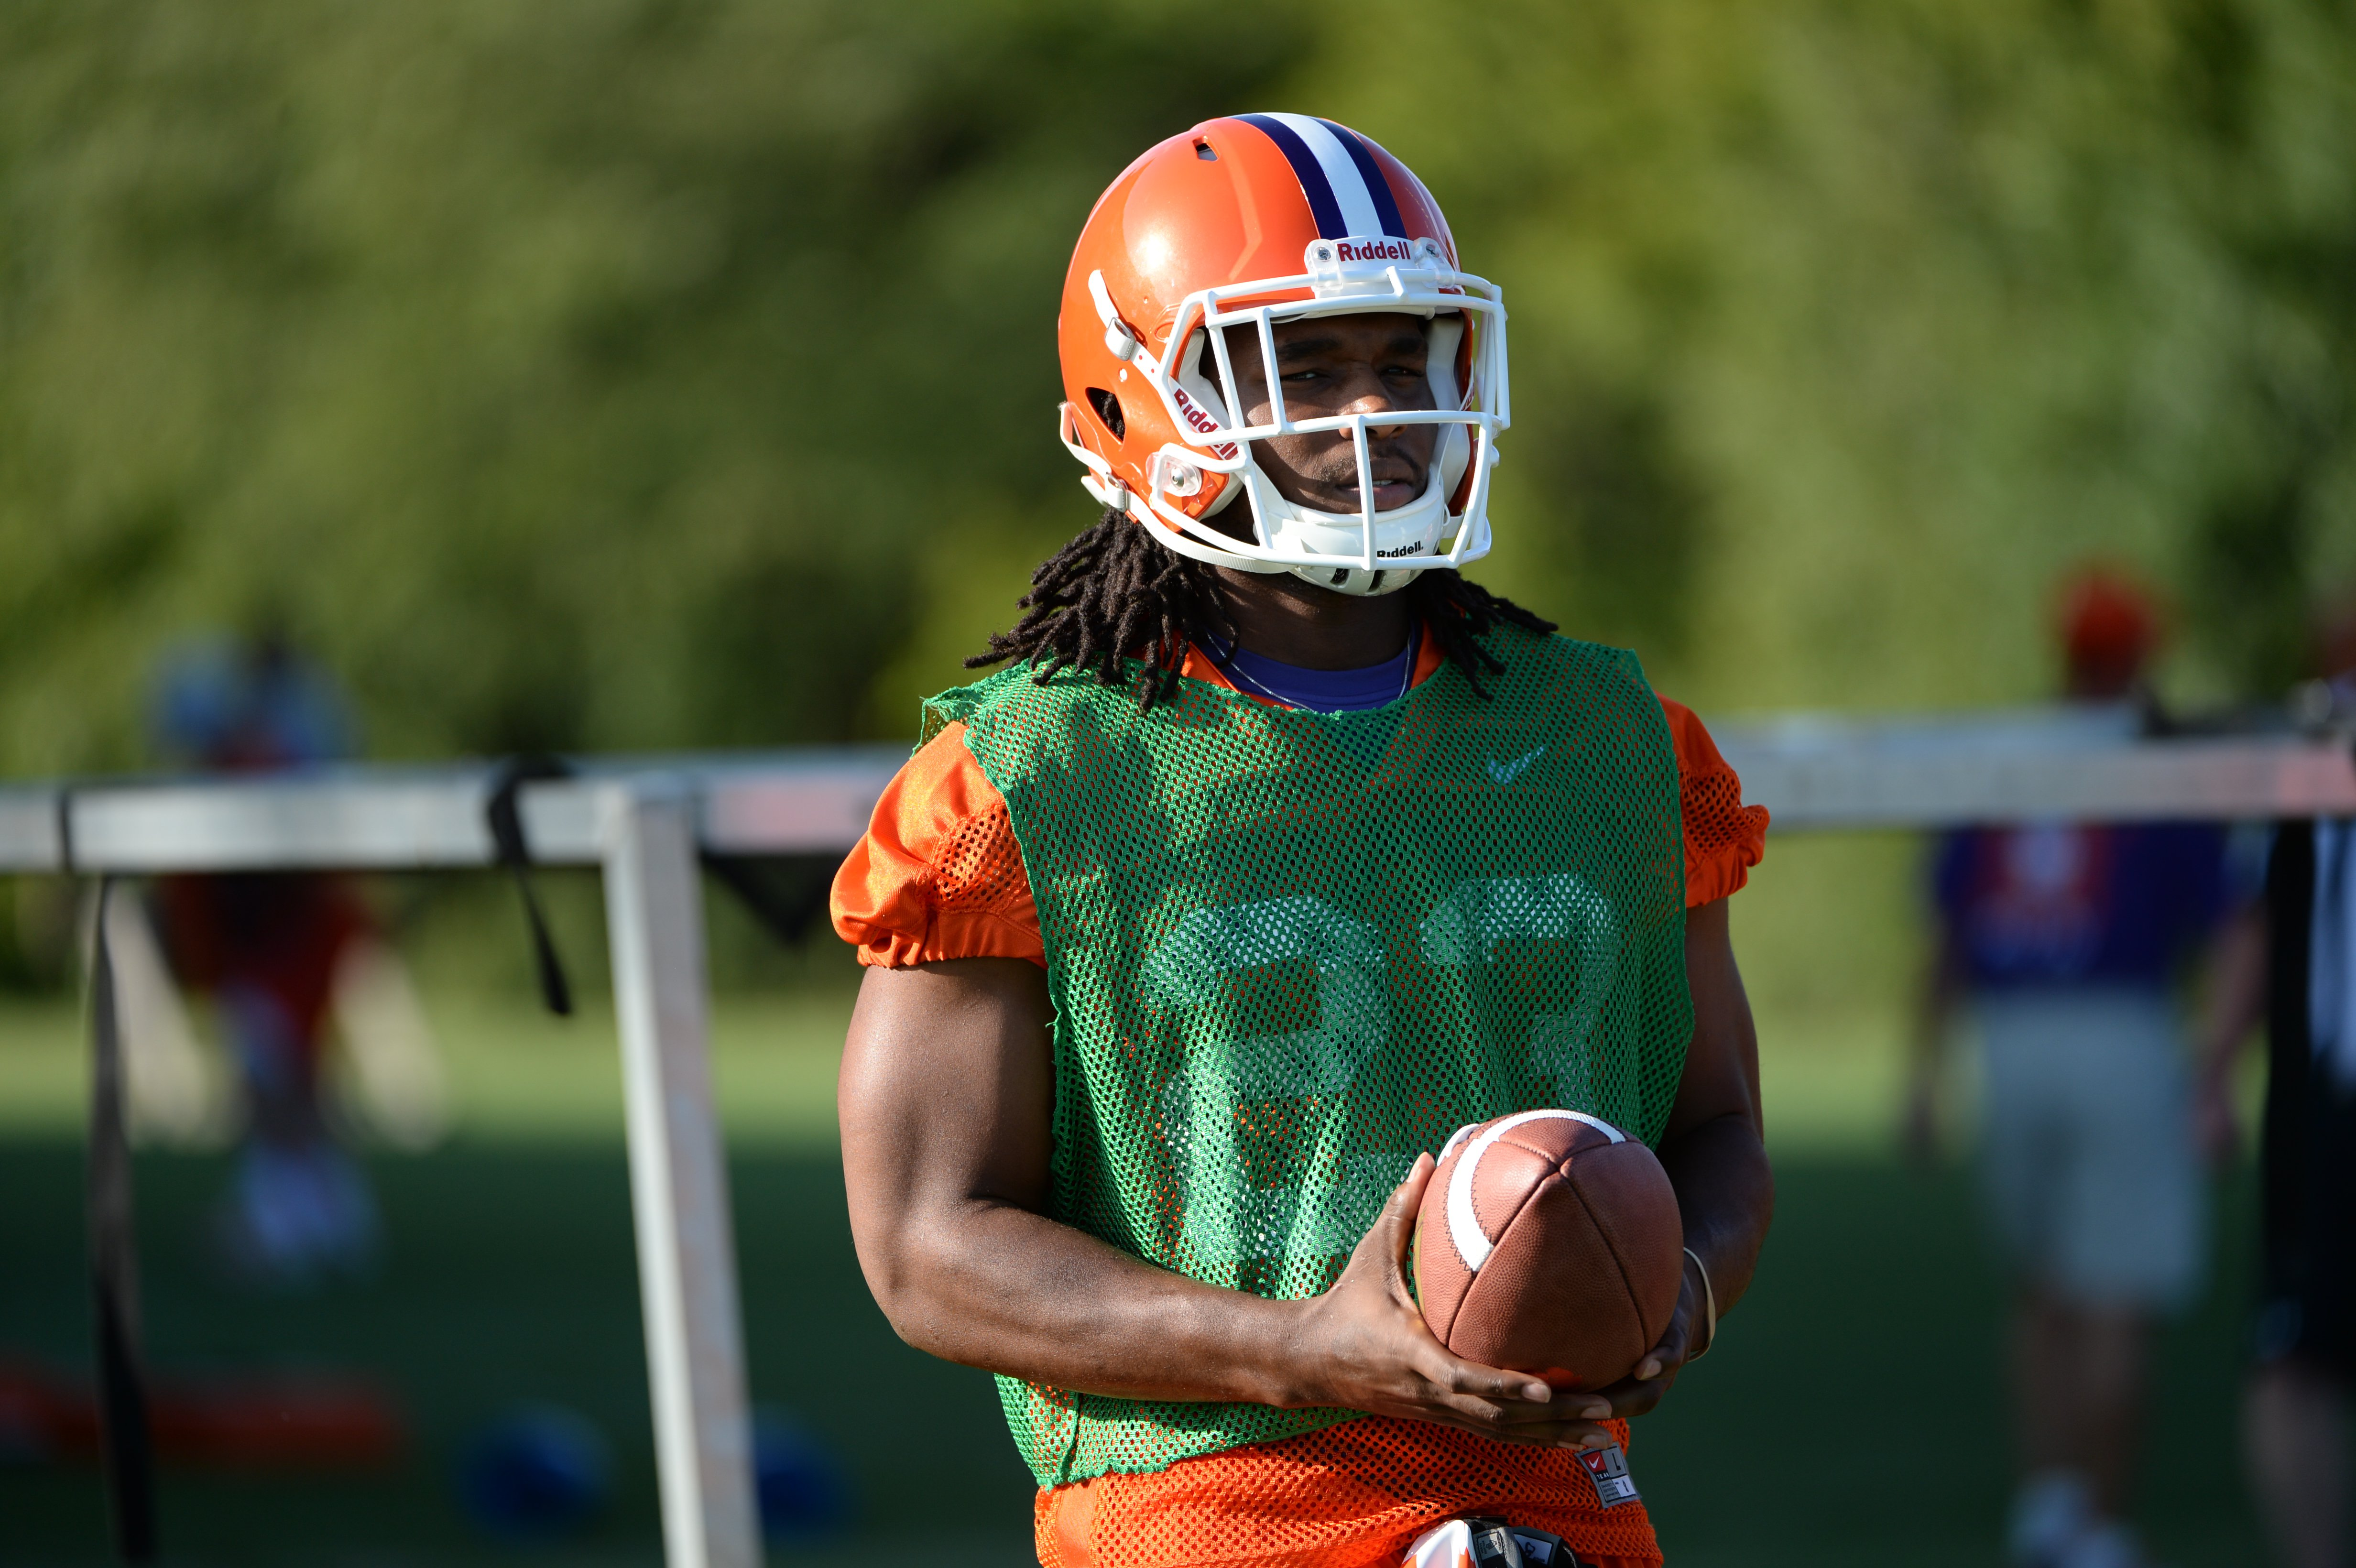 Tyshon Dye is no longer wearing the green jersey and will practice this week